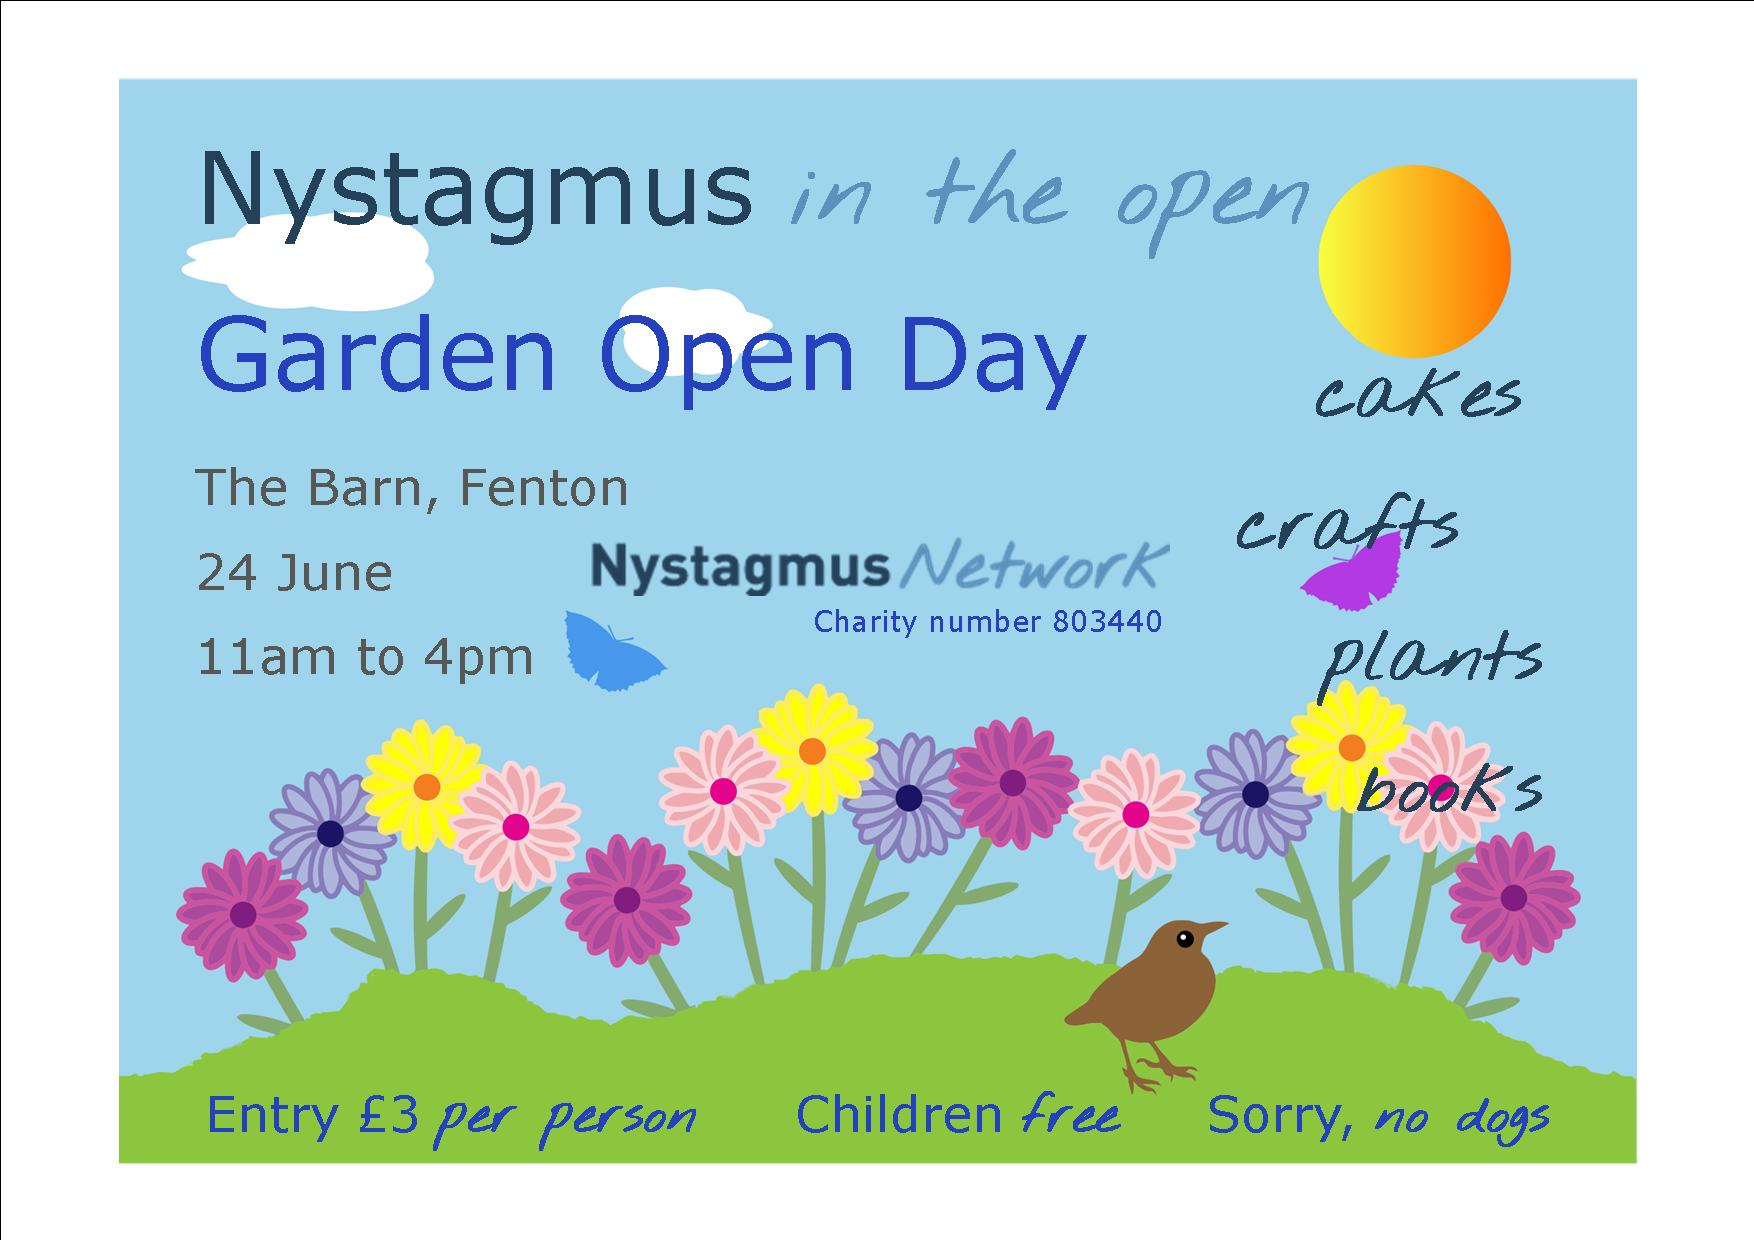 Nystagmus in the garden